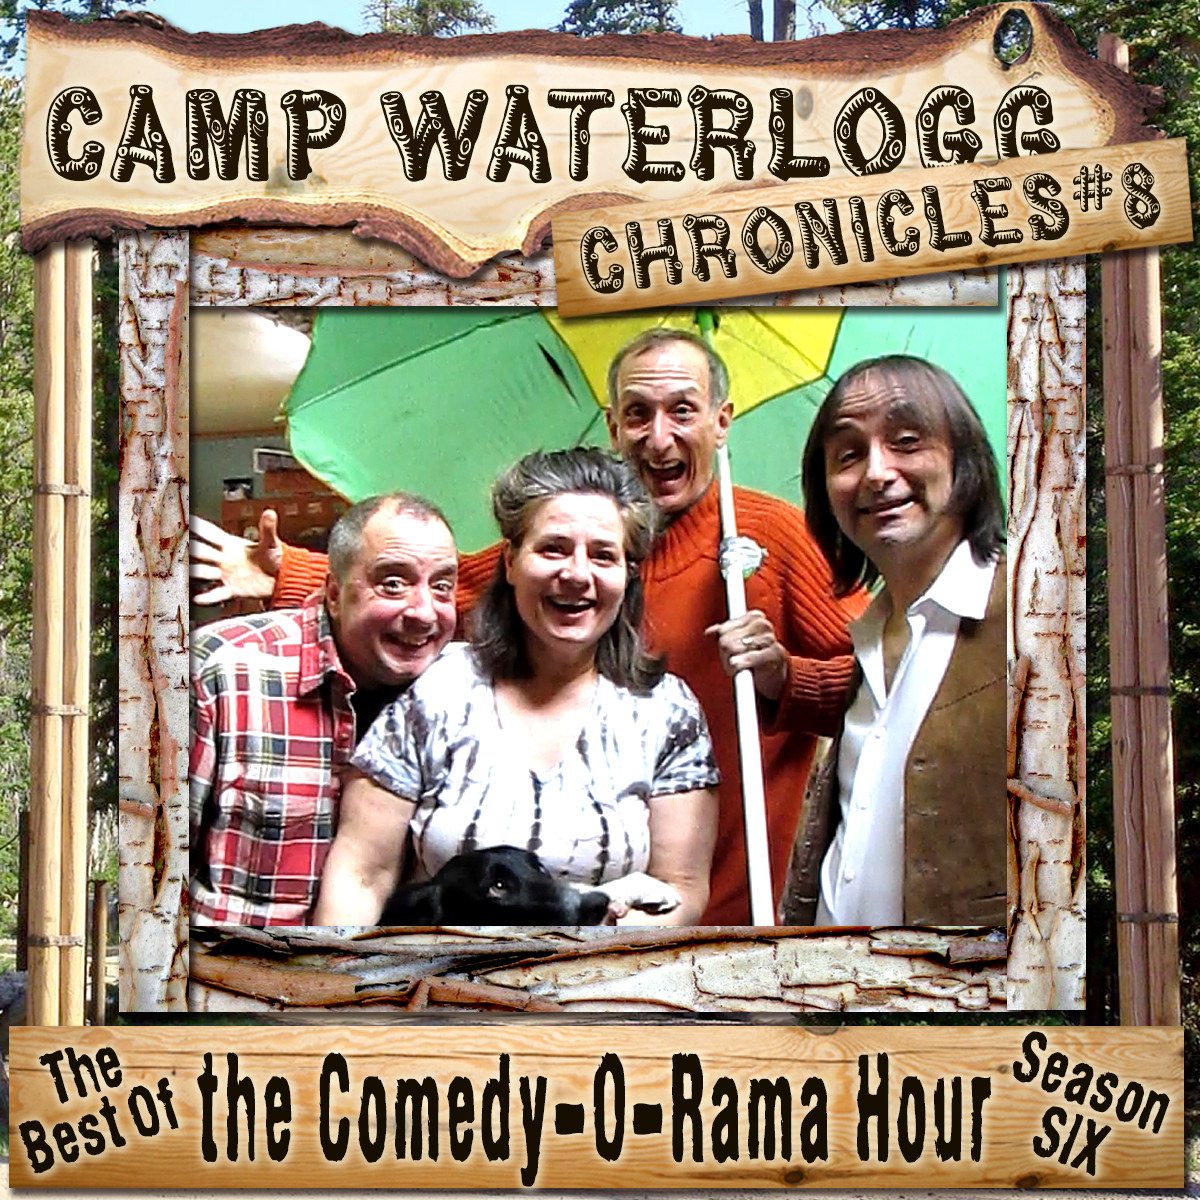 Printable The Camp Waterlogg Chronicles 8: The Best of the Comedy-O-Rama Hour, Season 6 Audiobook Cover Art